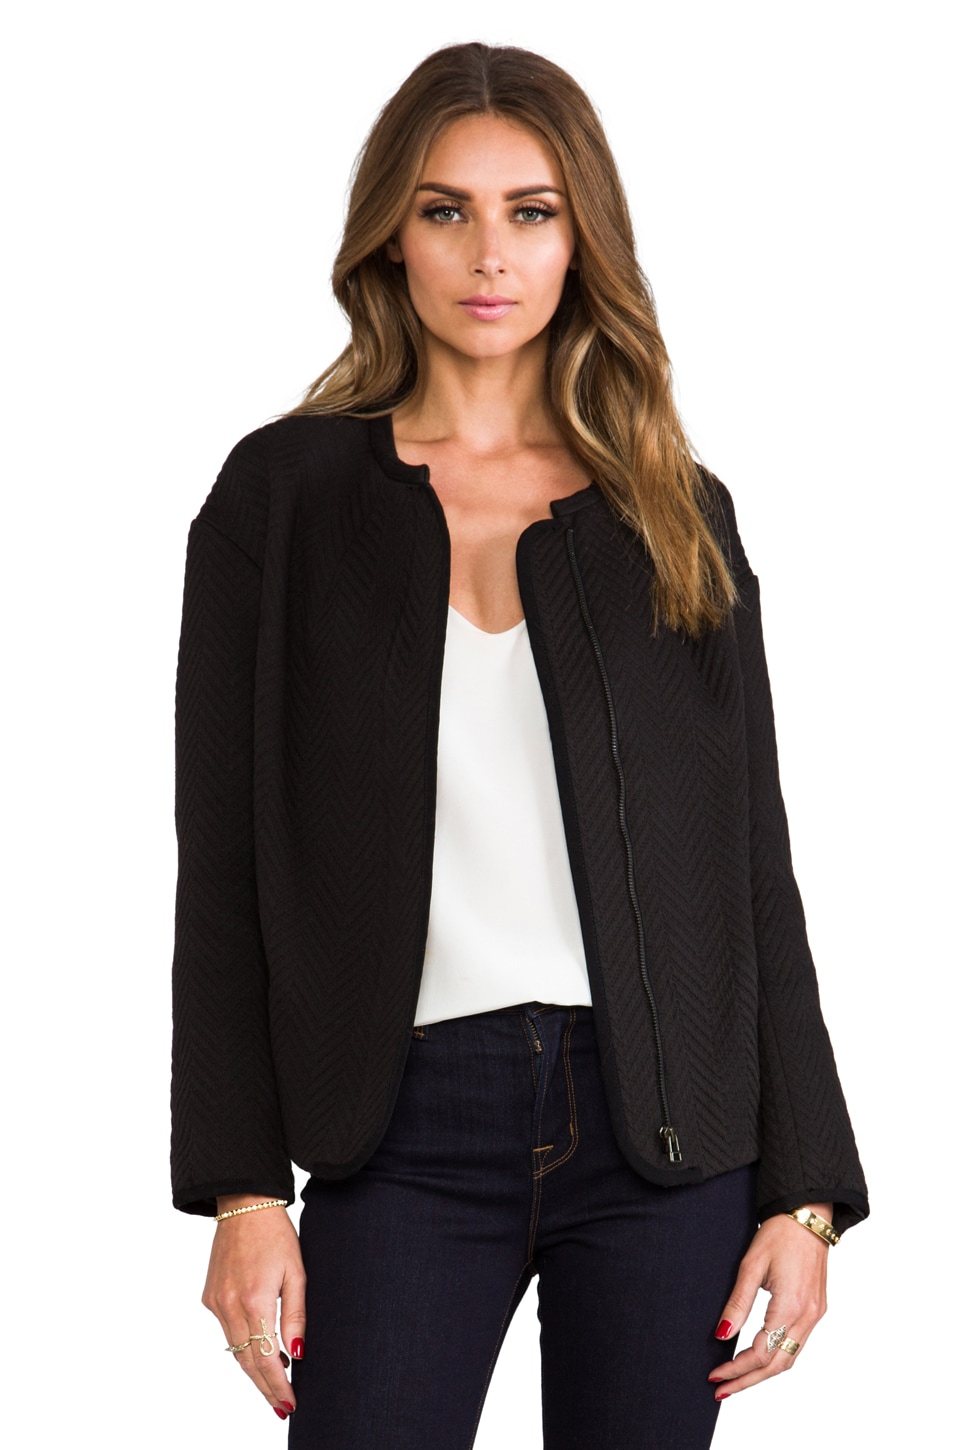 BY ZOE Roxy Blazer in Black